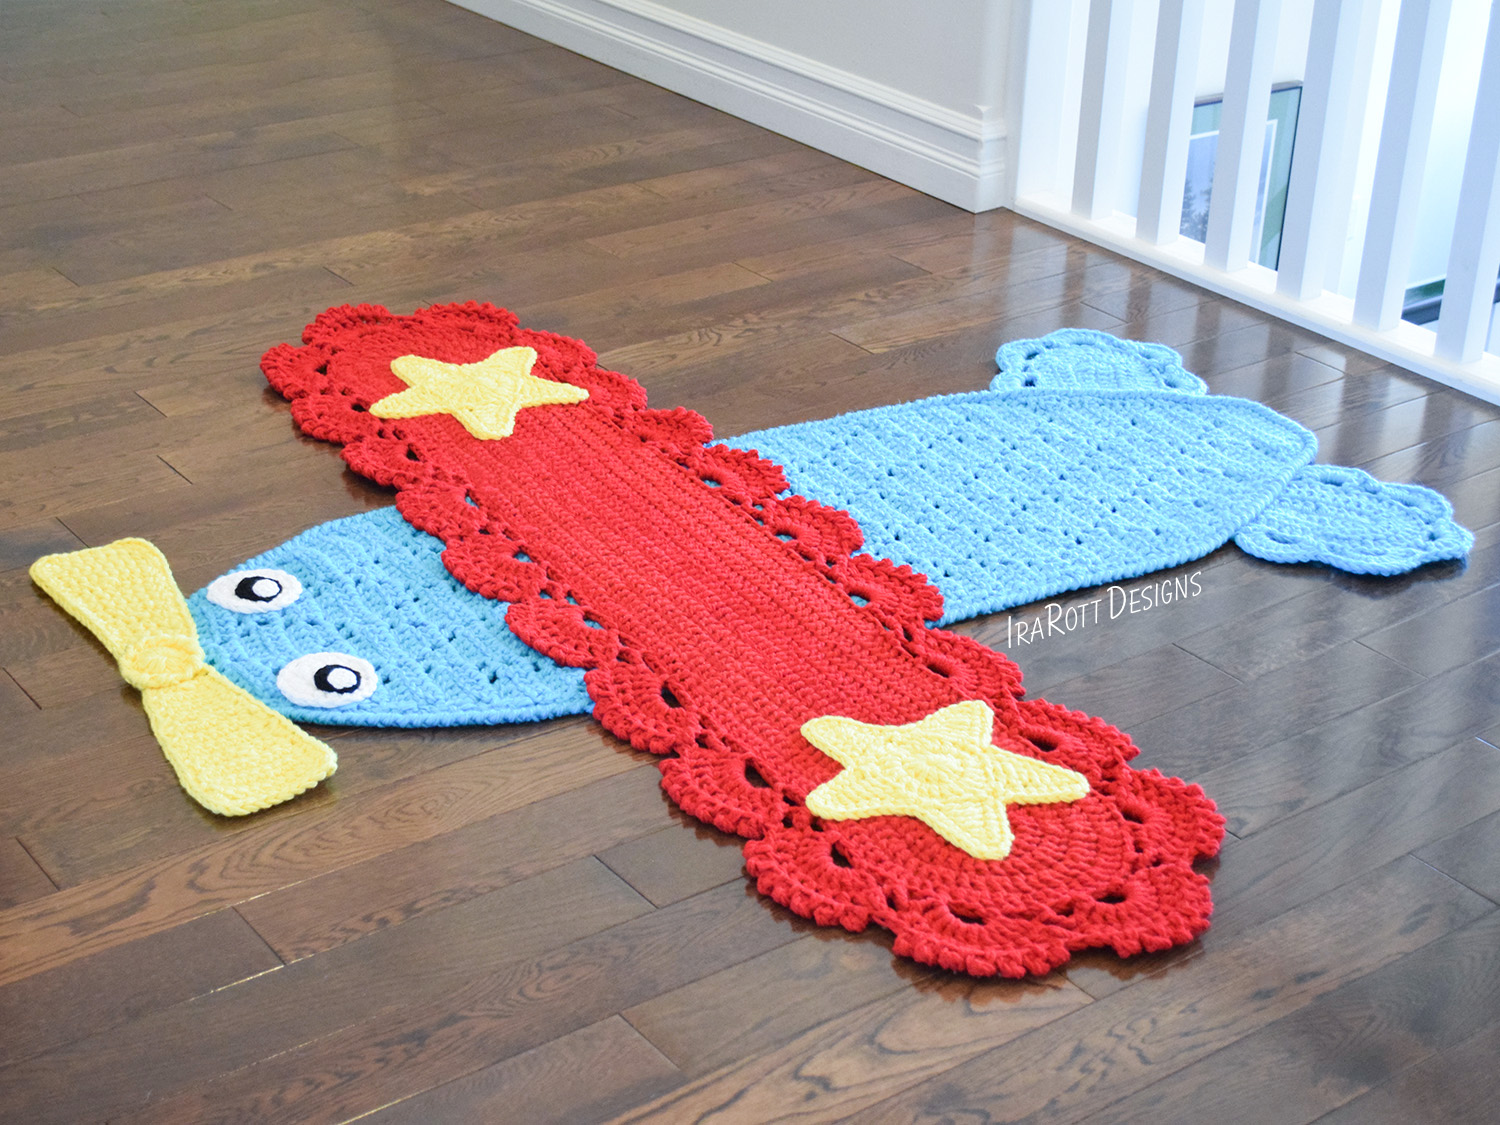 Peter The Airplane Rug Pdf Crochet Pattern Irarott Inc